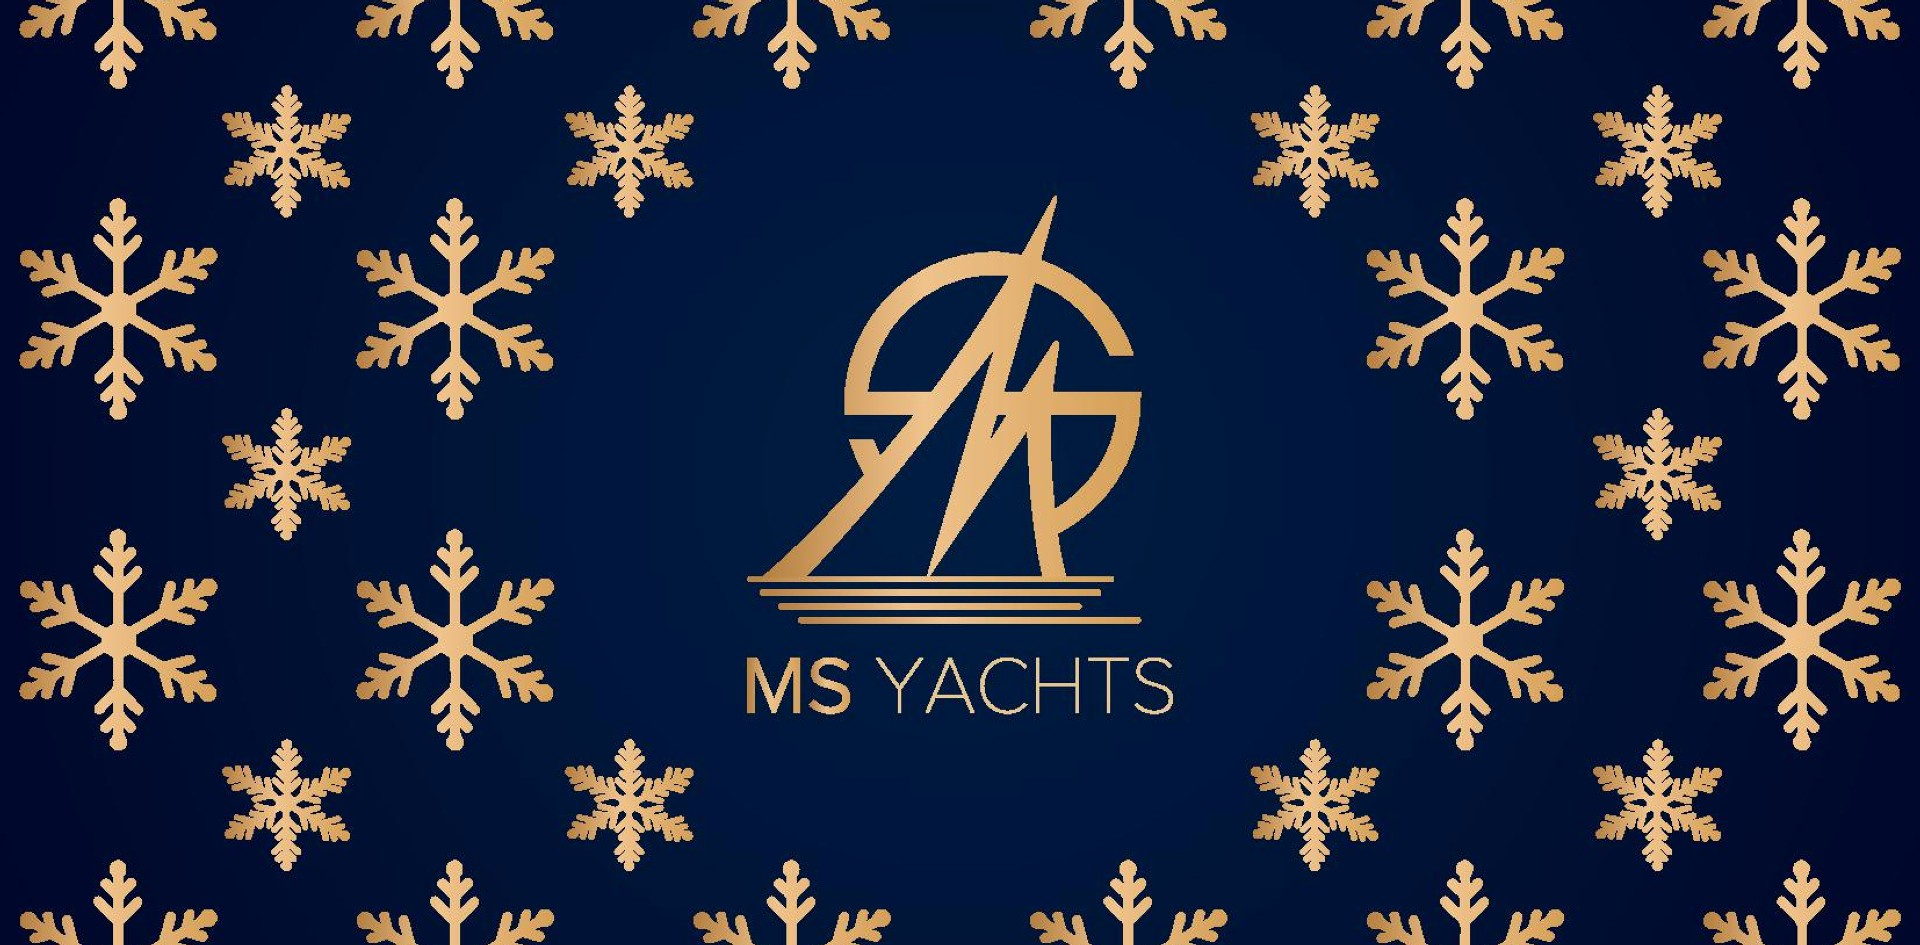 MS YACHTS wish you a happy 2018 year!